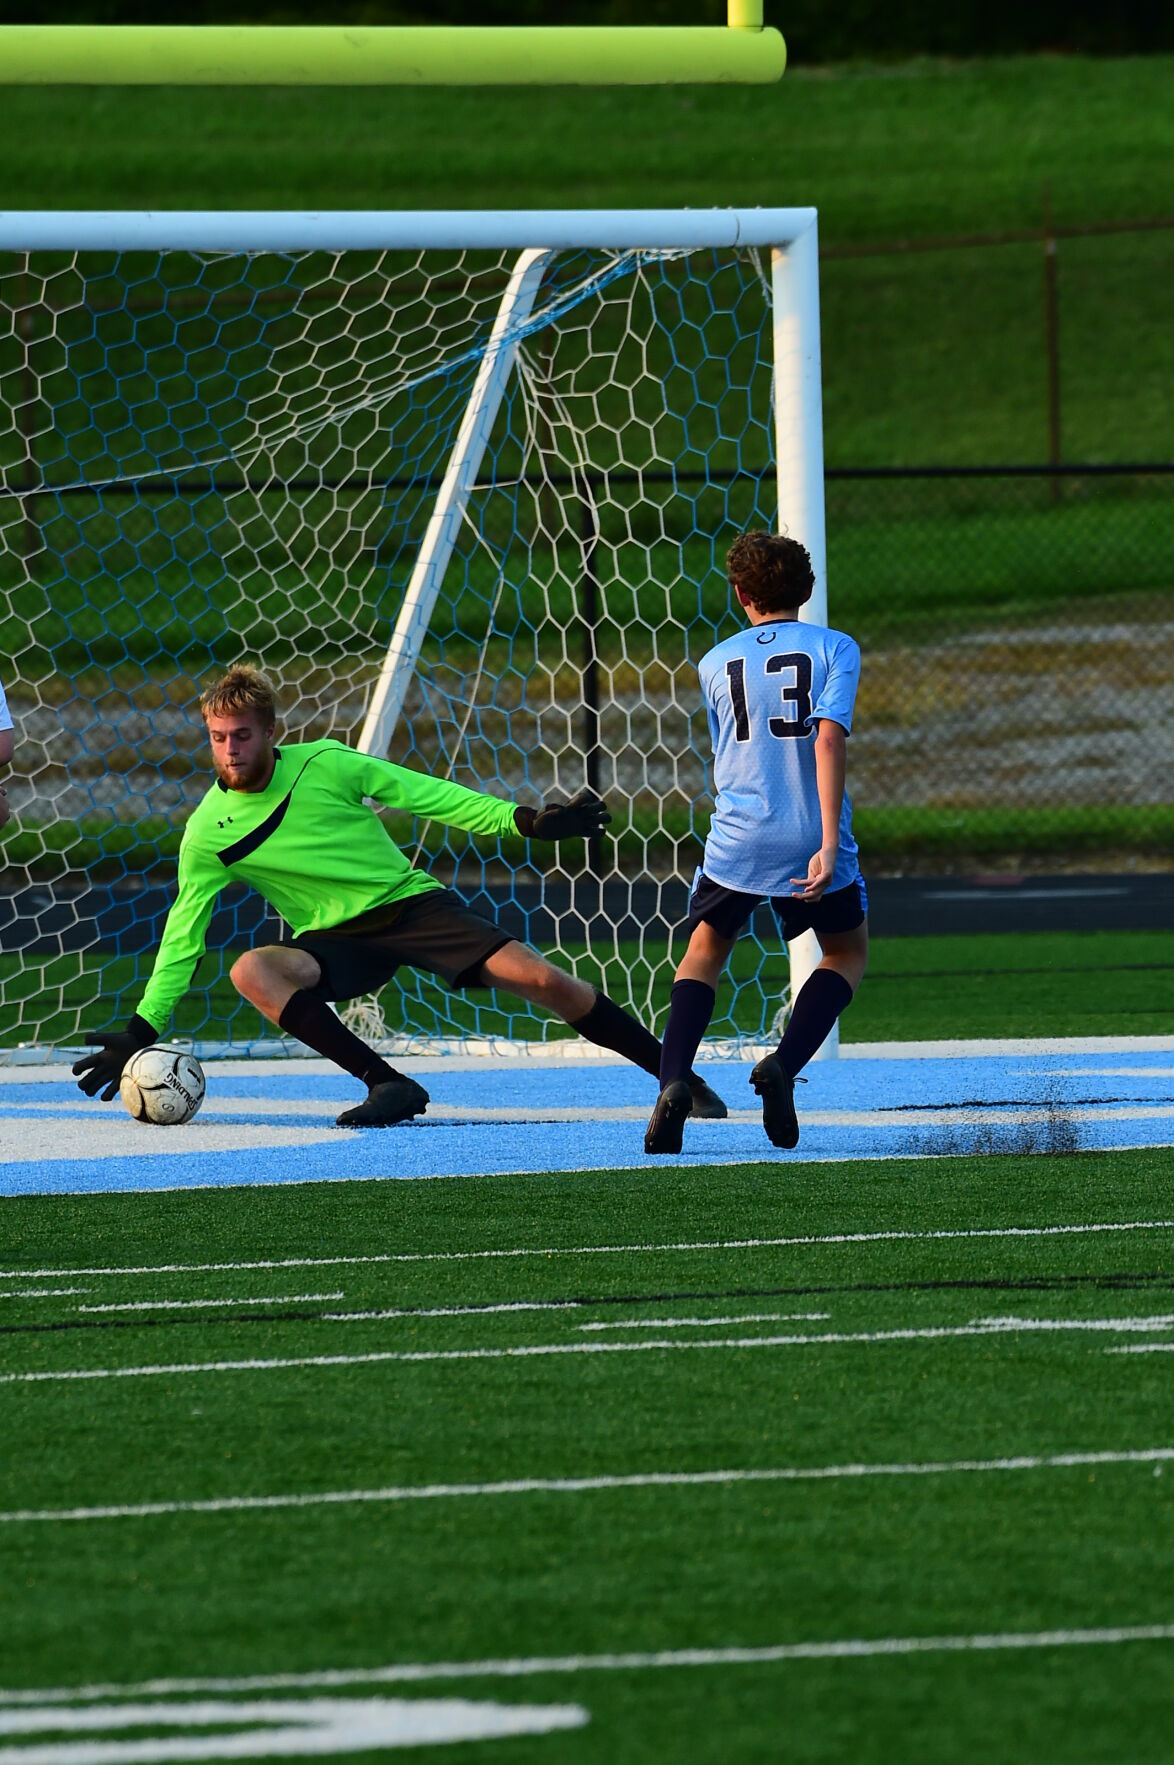 PB 13 Connely Sparks is stuffed point blank by ND goalie Wade Britton.JPG